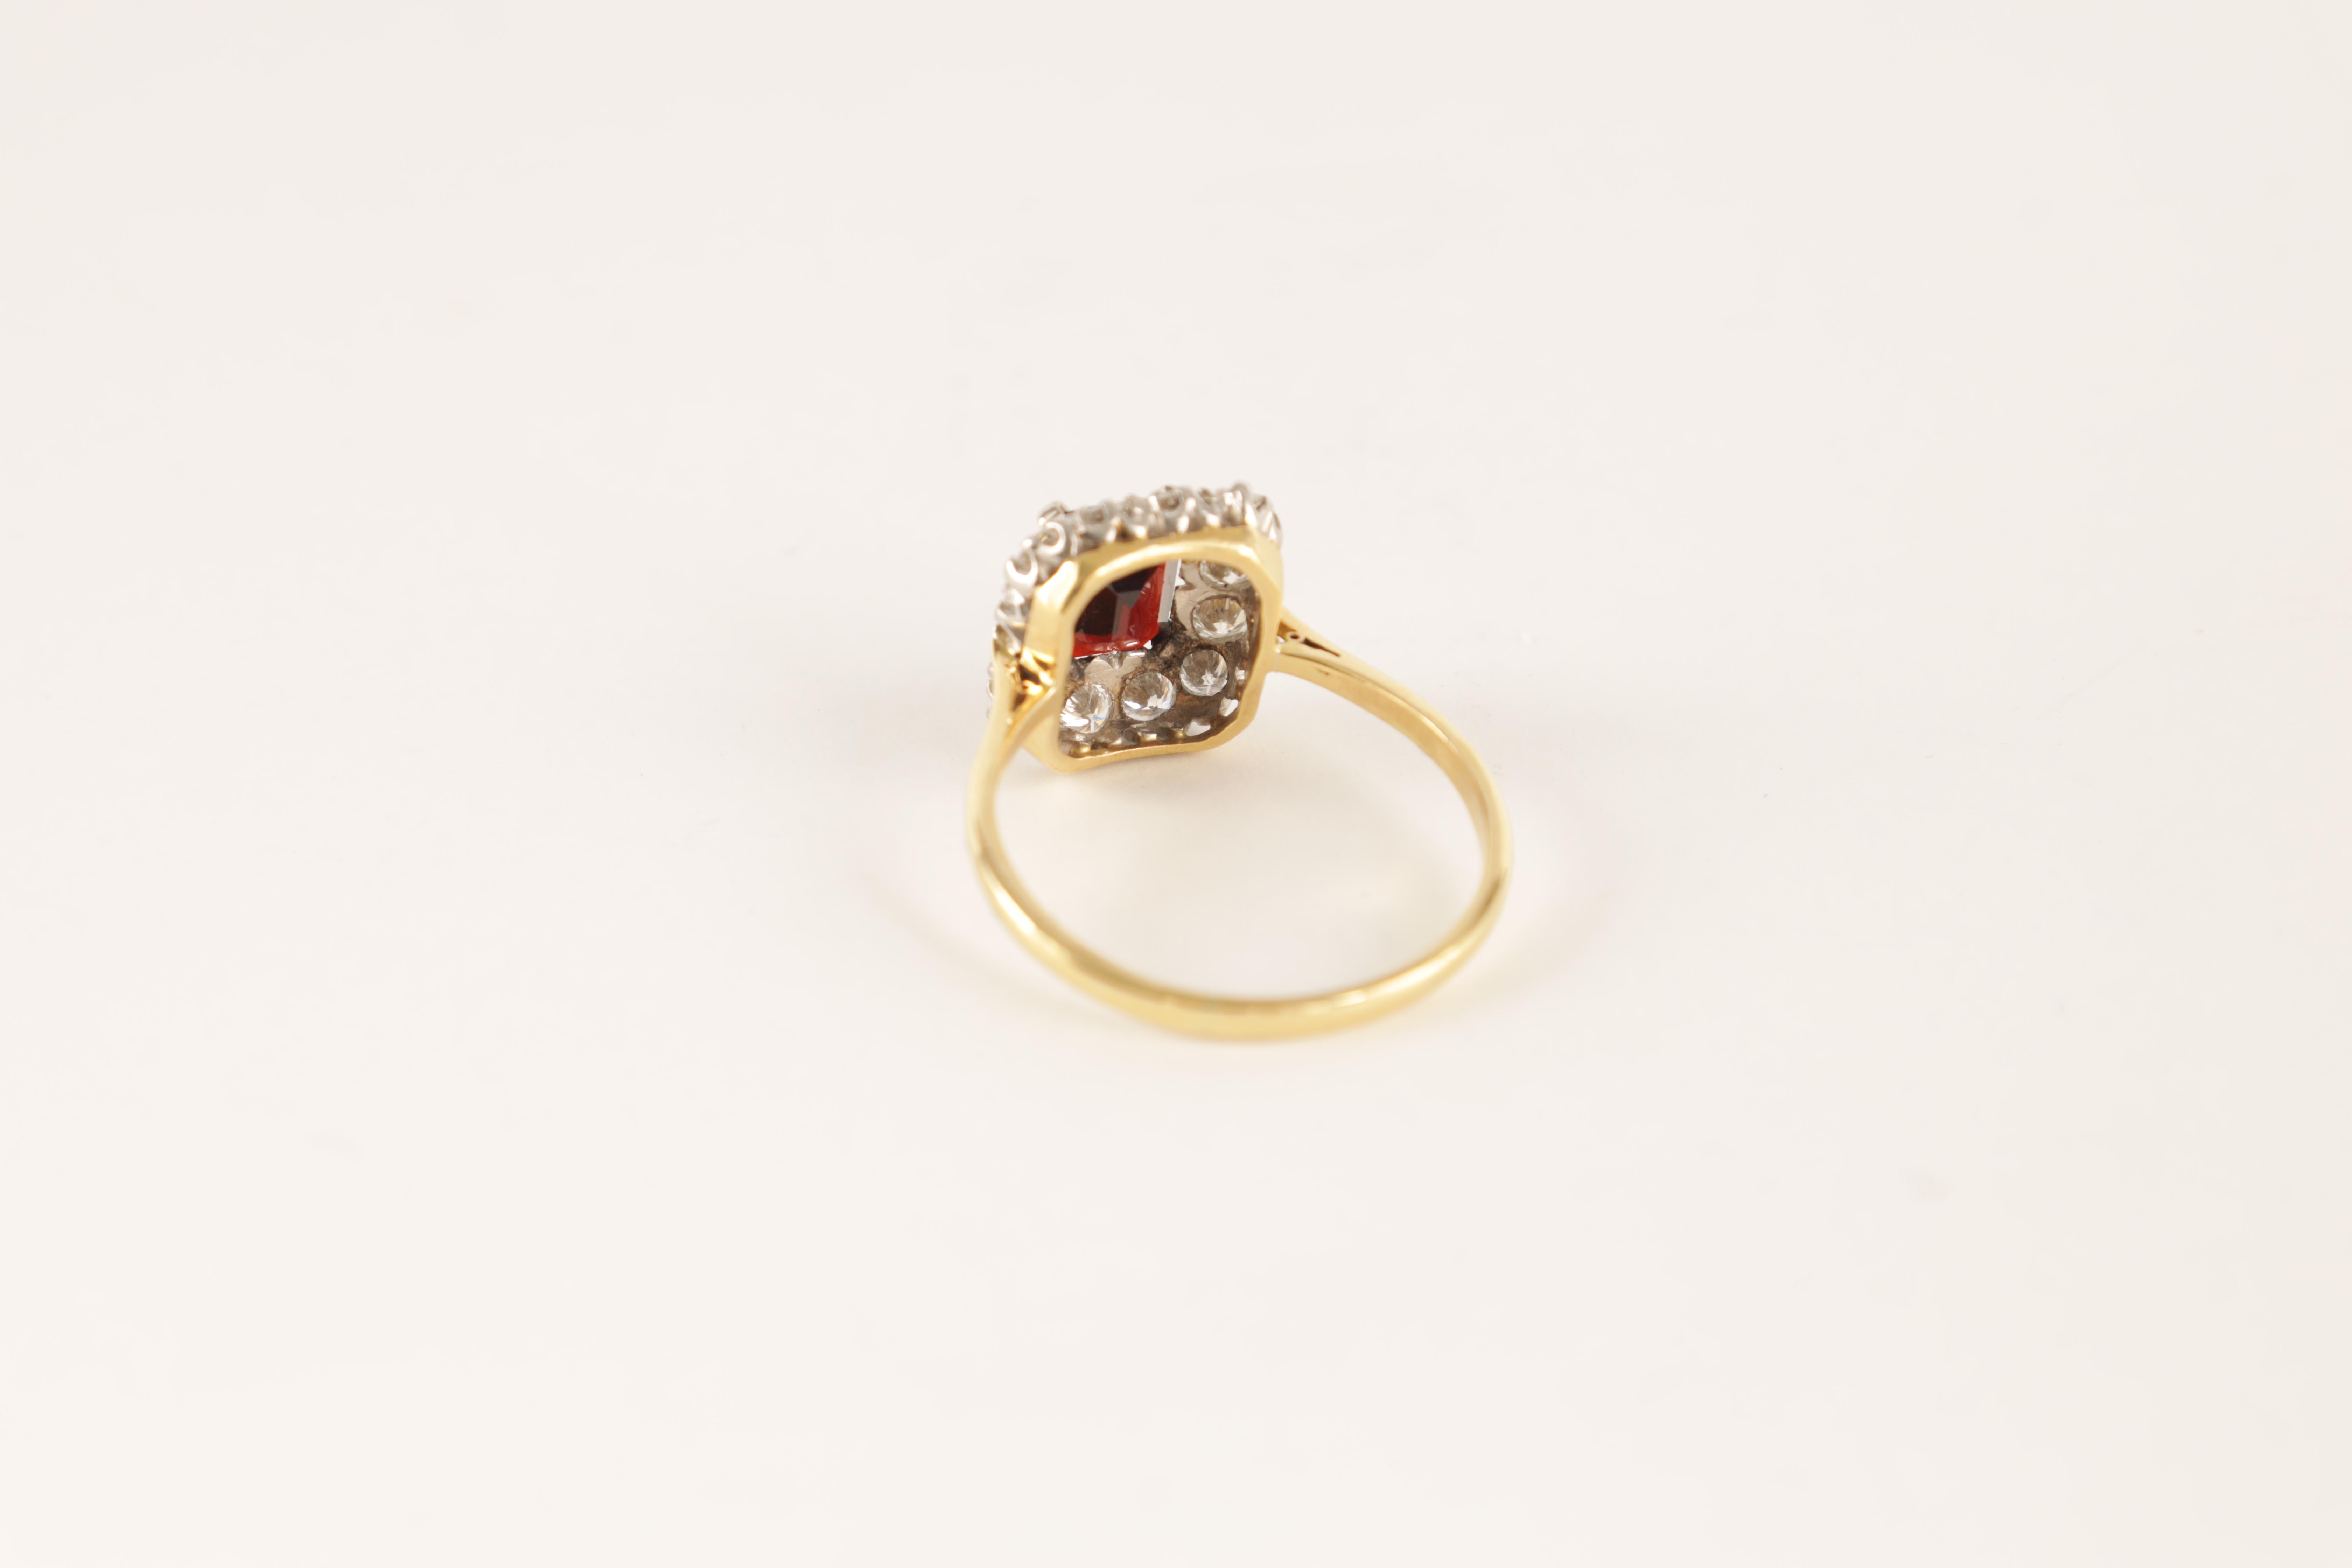 A LADIES 18CT GOLD AND PLATINUM RUBY AND DIAMOND RING with emerald cut ruby surrounded by 12 - Image 4 of 4